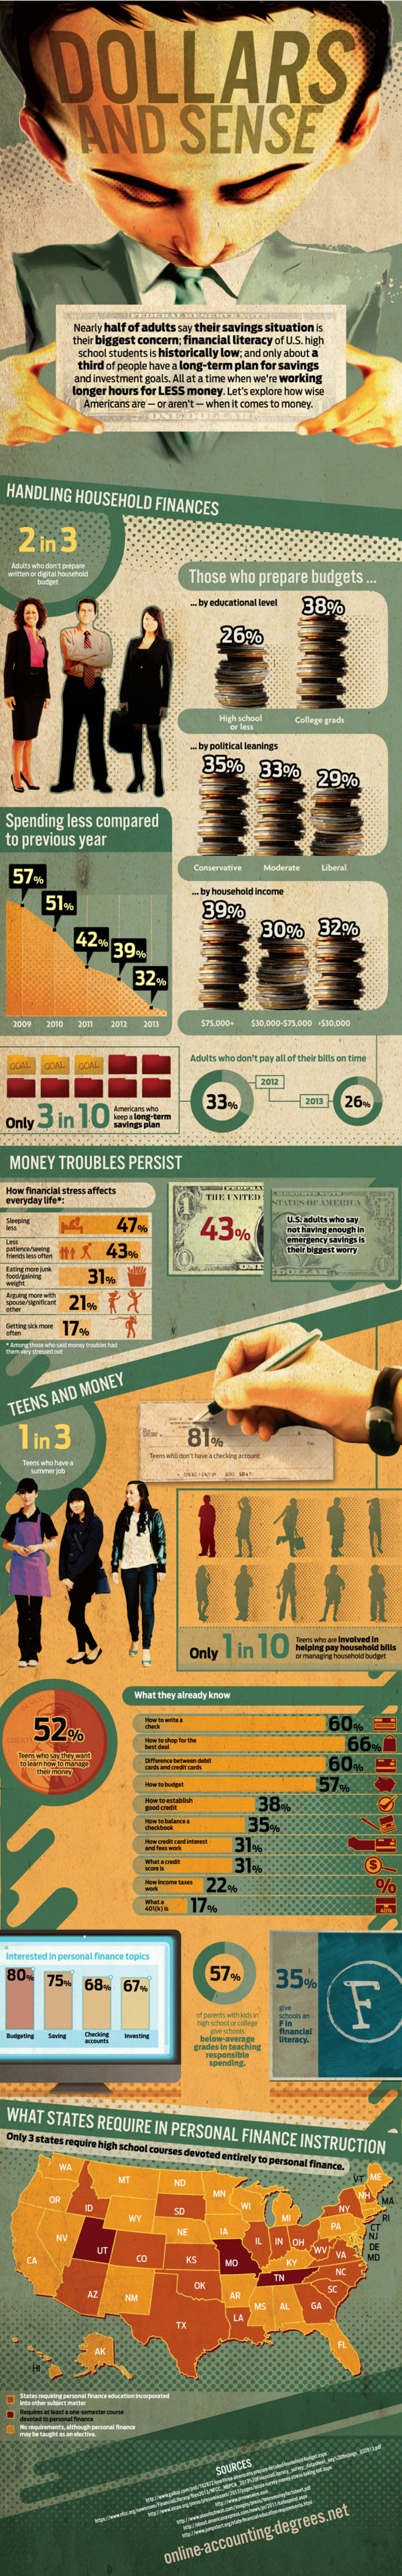 Dollars and Sense Infographic